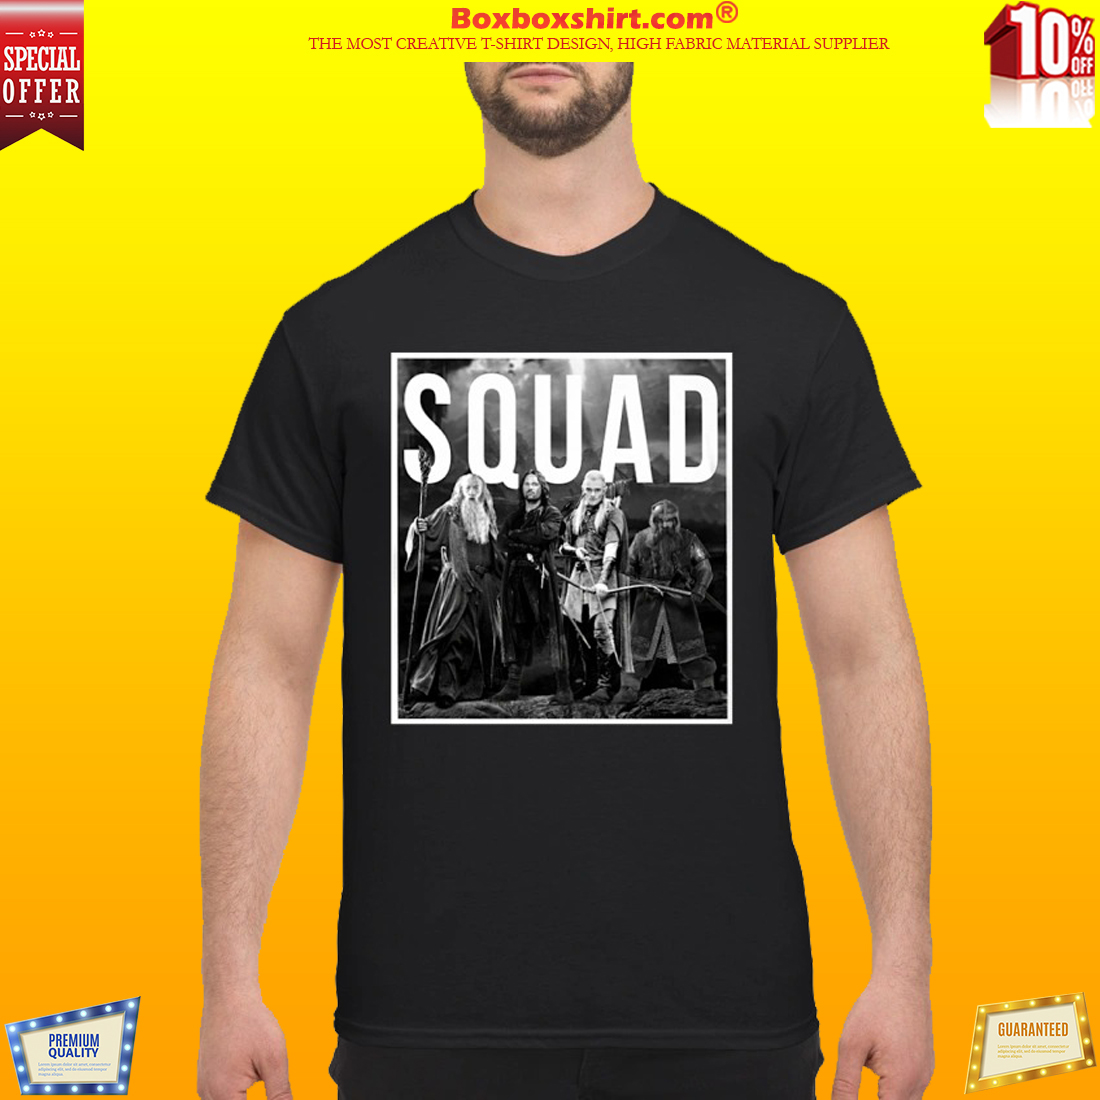 The Lord of the rings squad classic shirt